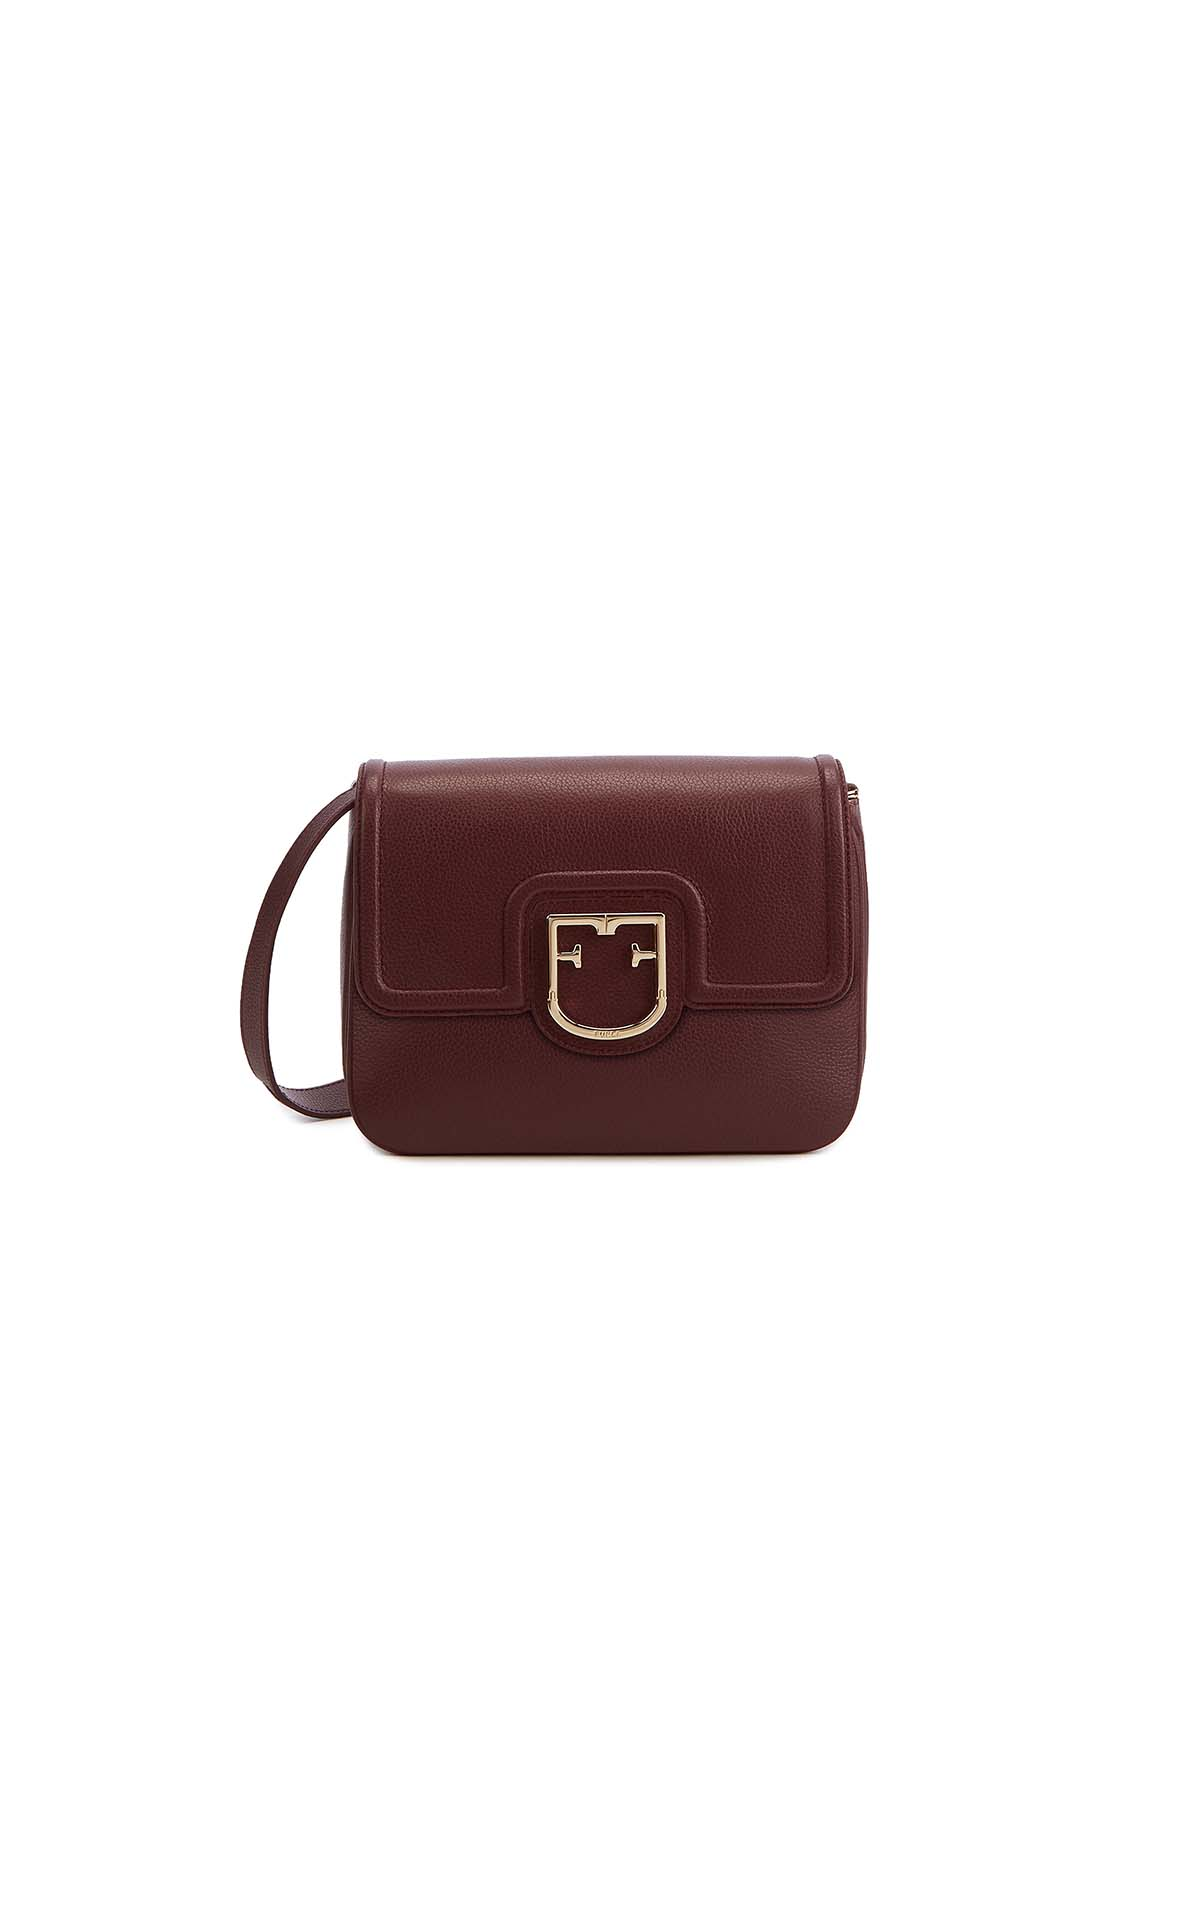 Furla Joy small crossover bag in burgundy at The Bicester Village Shopping Collection